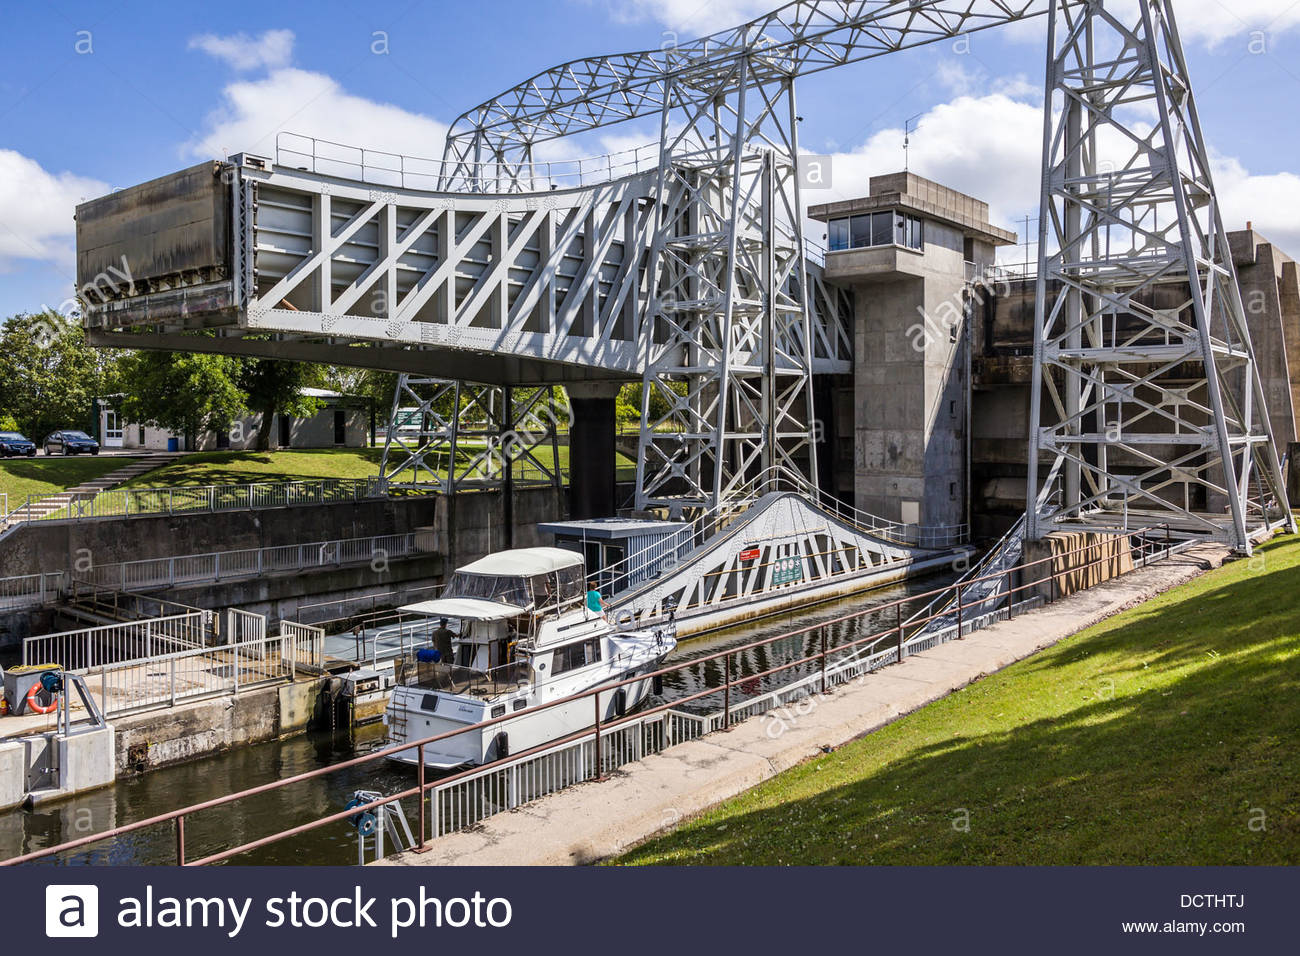 Lower reach of Kirkfield Lift Lock on Trent-Severn Waterway National Historic Site of Canada at Kirkfield Ontario - Stock Image